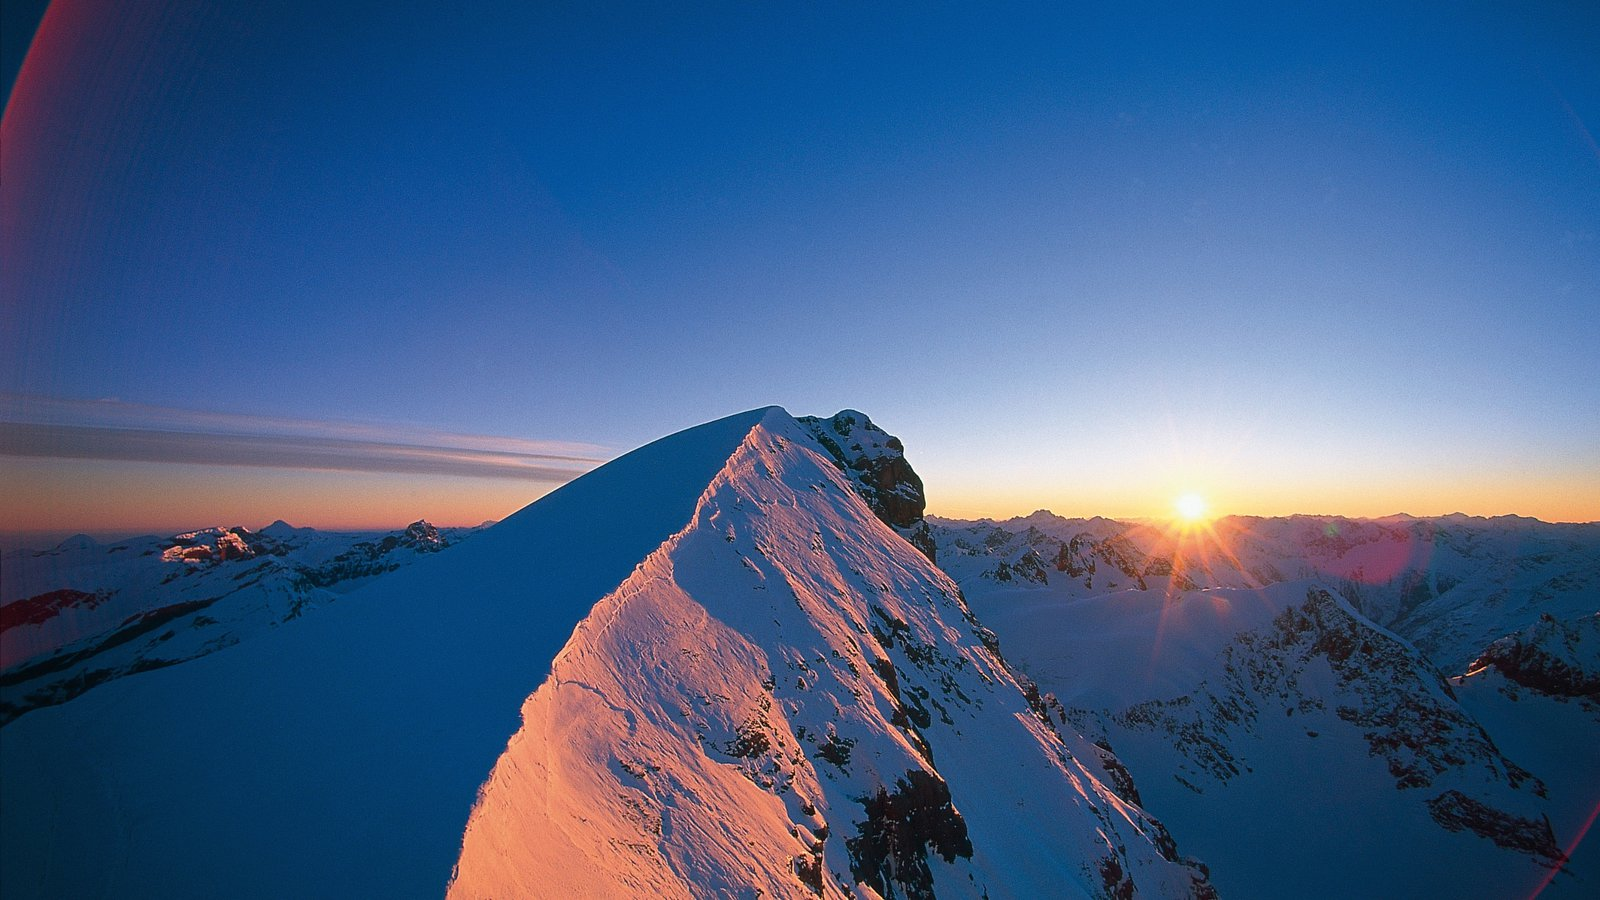 sunset & sunrise pictures: view images of engelberg-titlis ski resort